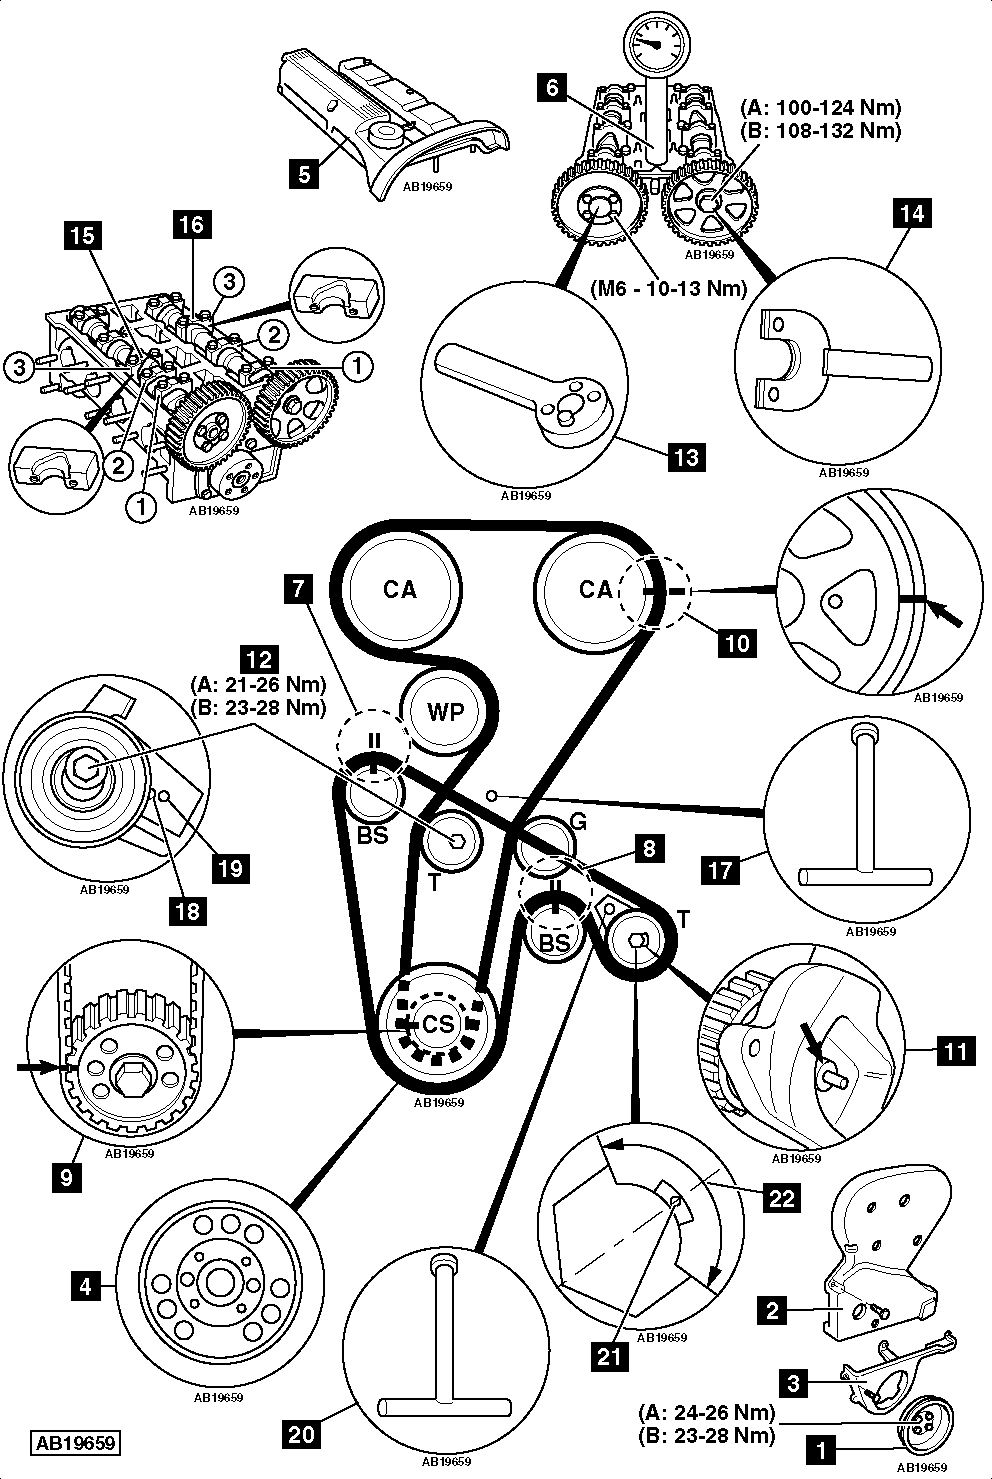 Faq About Engine Transmission Coolers furthermore Ford Explorer Exhaust Diagram also P 0996b43f80cb1031 together with 2qf  Fuse Box Diagram 2002 Ford F 150 also 58upb Cadillac Srx Bank Oxygen Sensor 2006 Cadillac. on 2010 ford f 150 v6